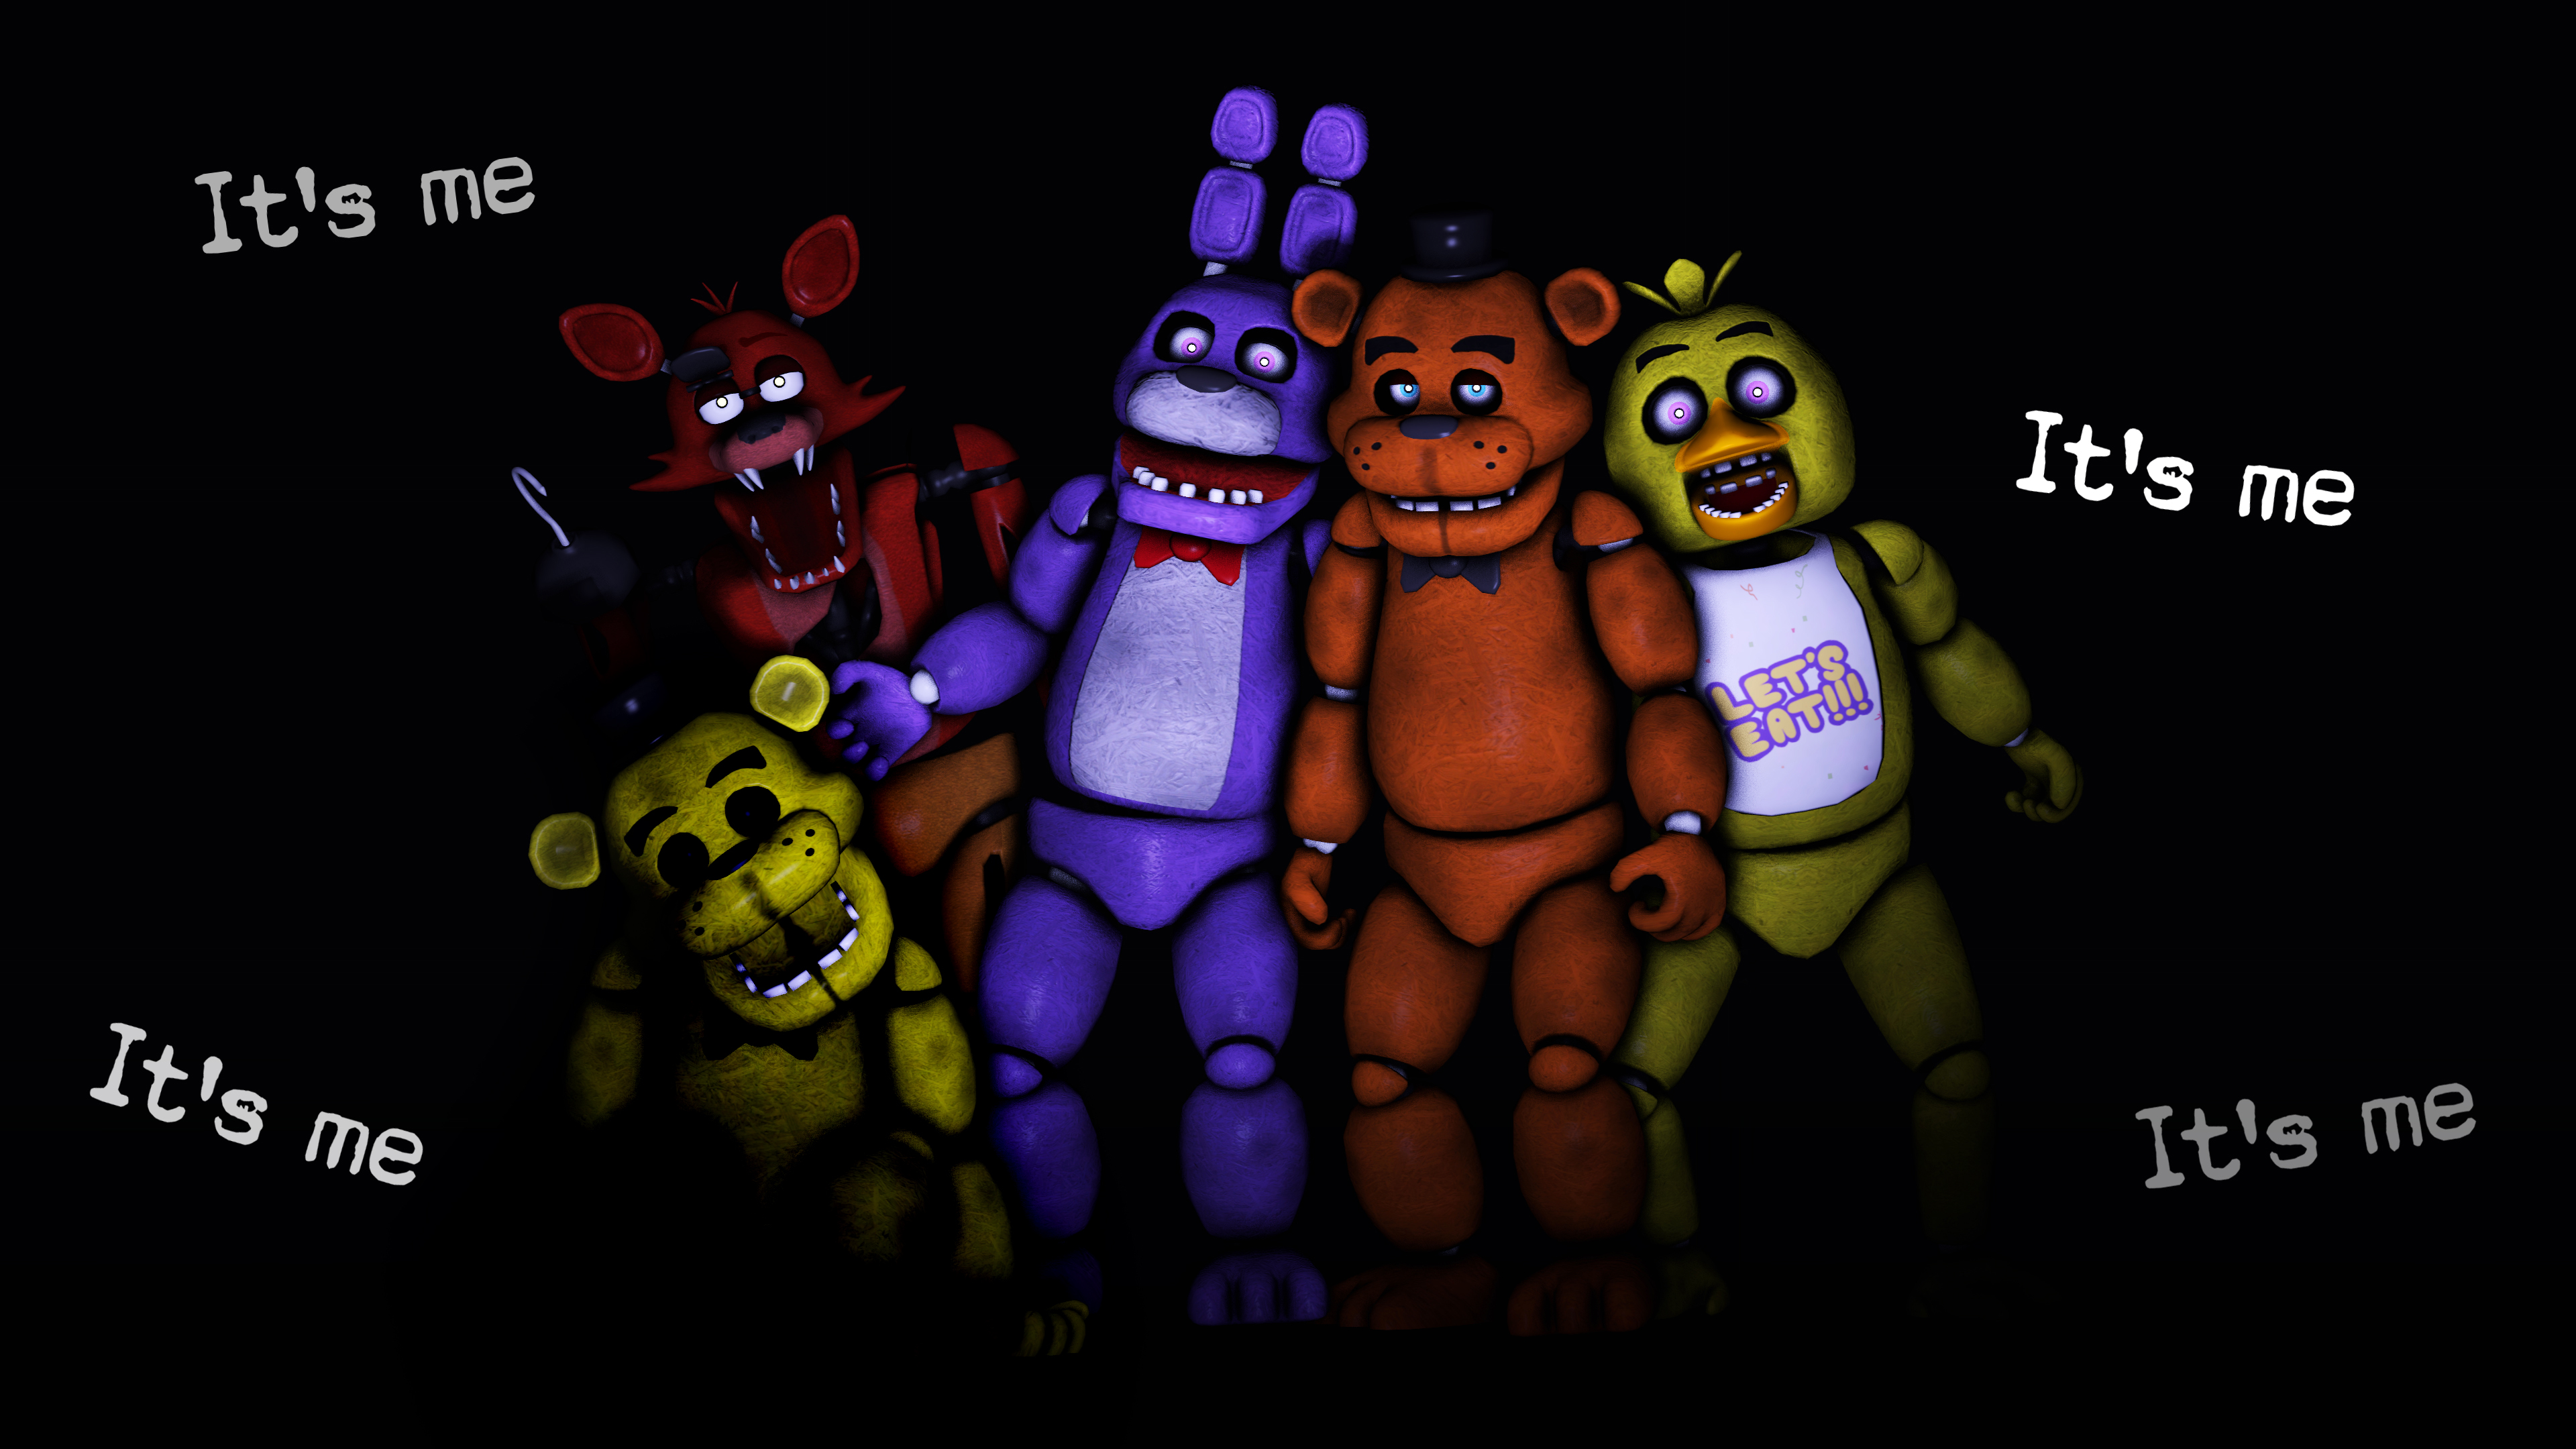 SFM] FNAF Animatronics by LoneWolfHBS 3840x2160